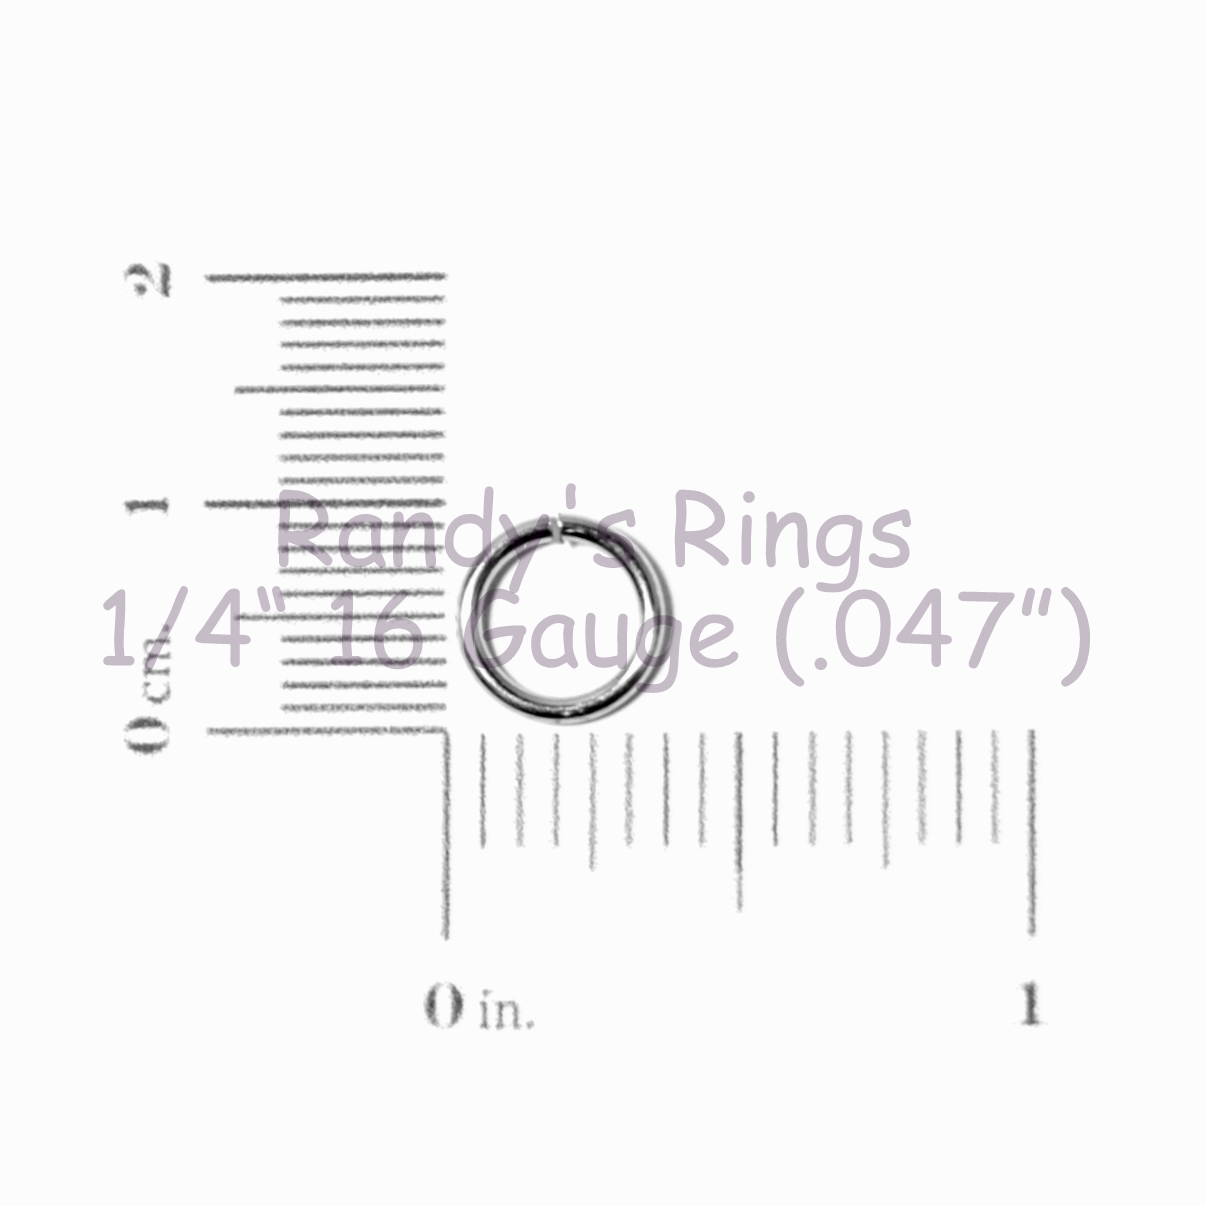 Randy S Rings Gt 1 4 16 Gauge 047 Jump Rings